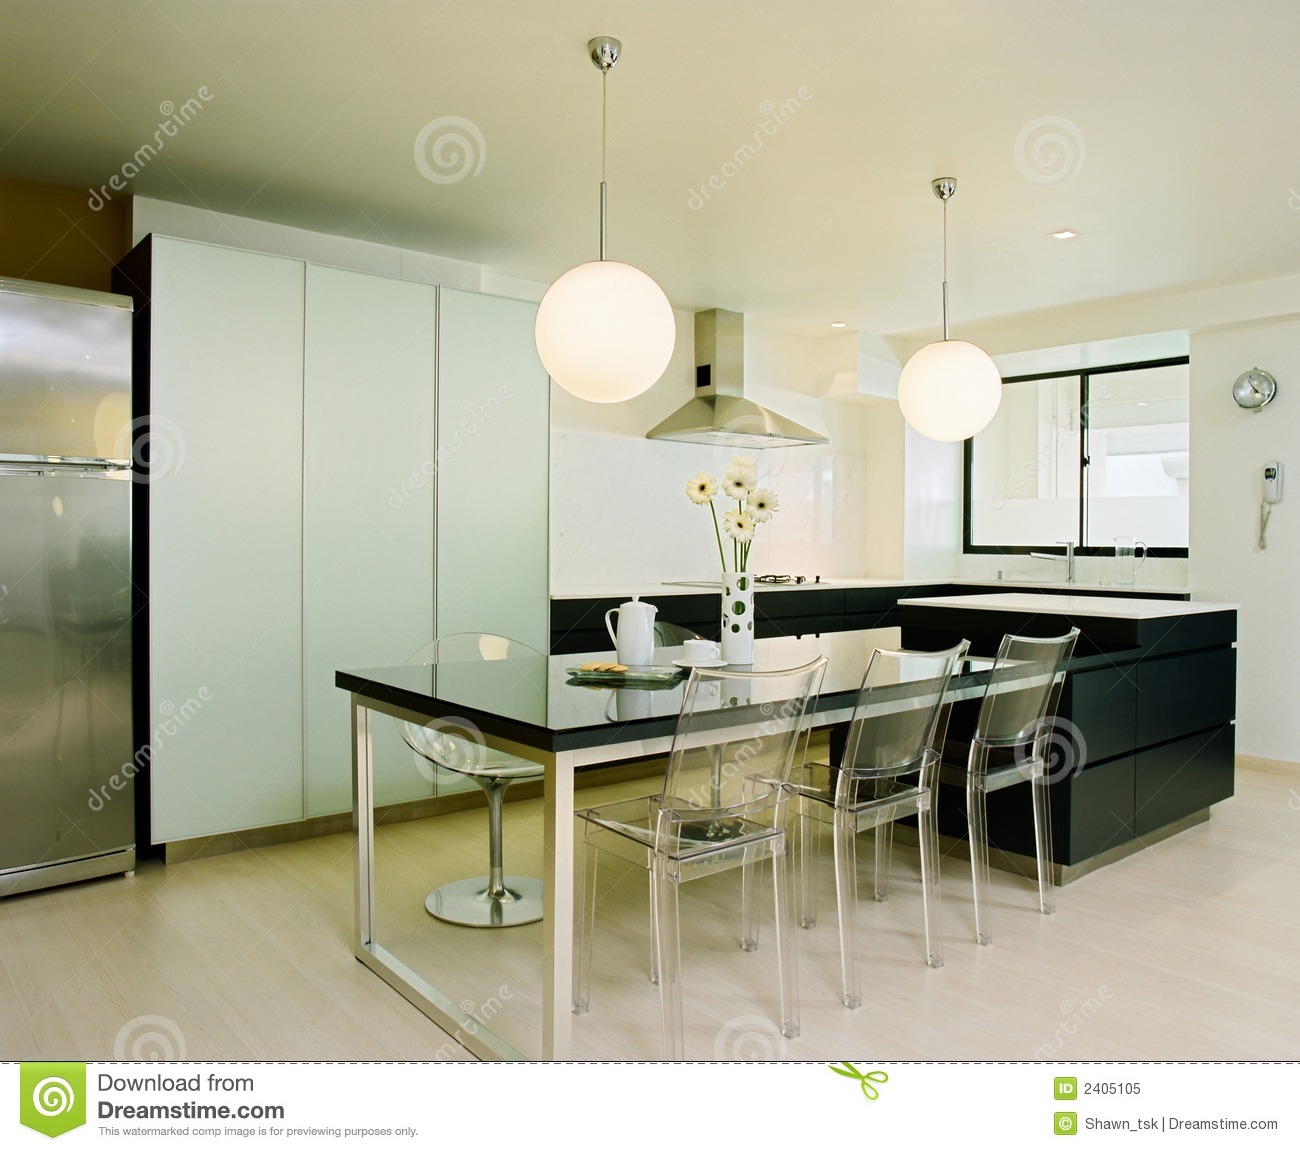 Kitchen Design Images Free: Kitchen Royalty Free Stock Photo